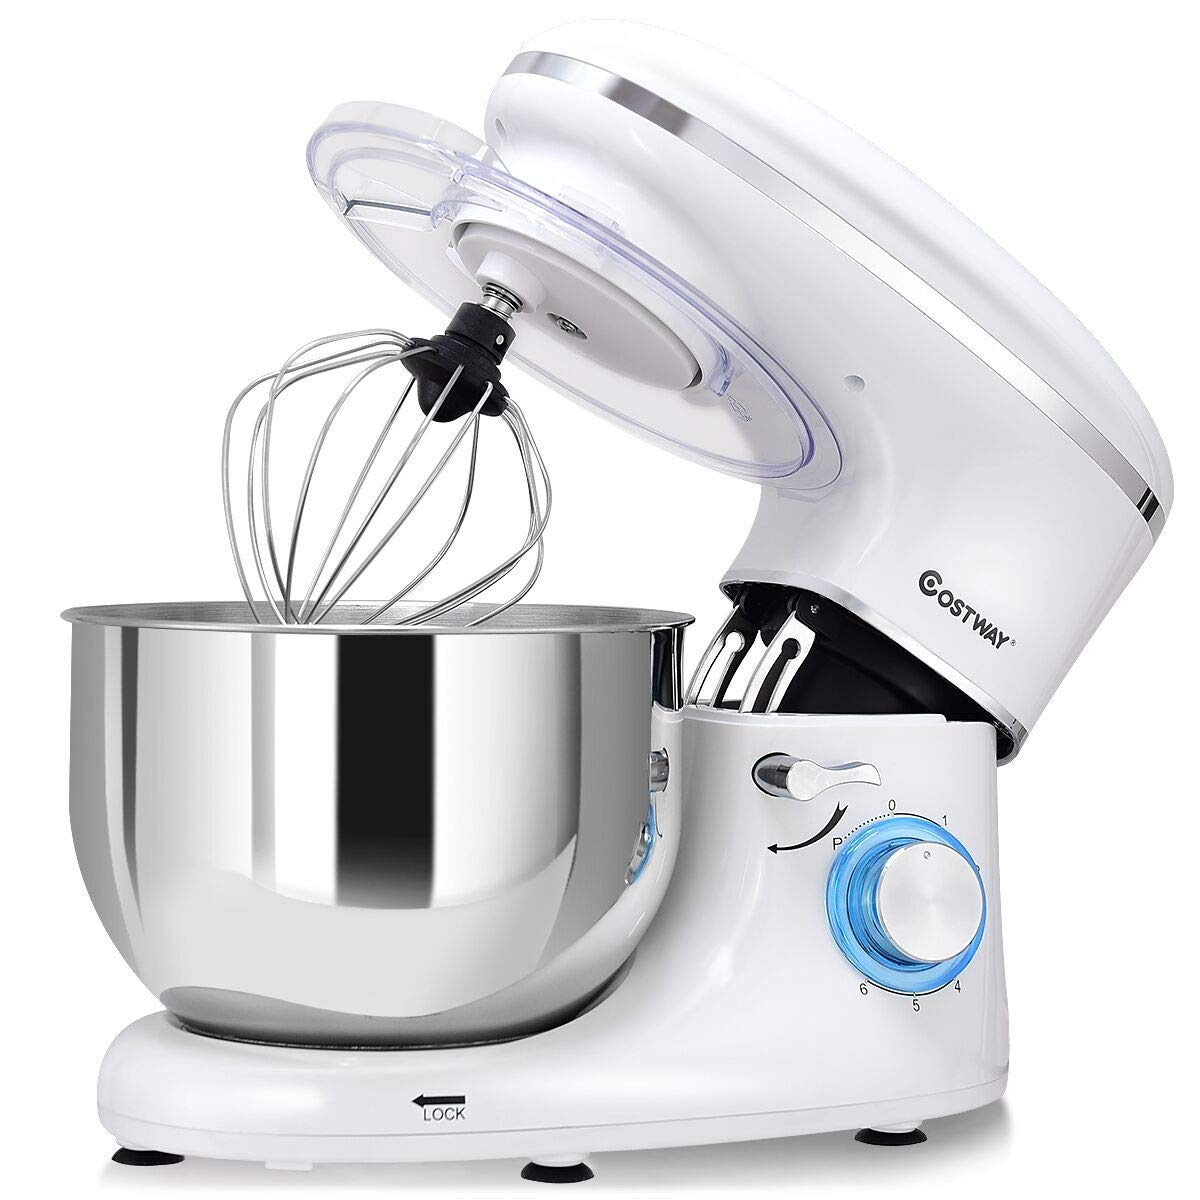 COSTWAY Stand Mixer, 6.3-Qt 660W 6-Speed Electric Mixer with Stainless Steel Bowl, Tilt-Head Food Mixer with Dough Hook, Beater, Whisk (White)